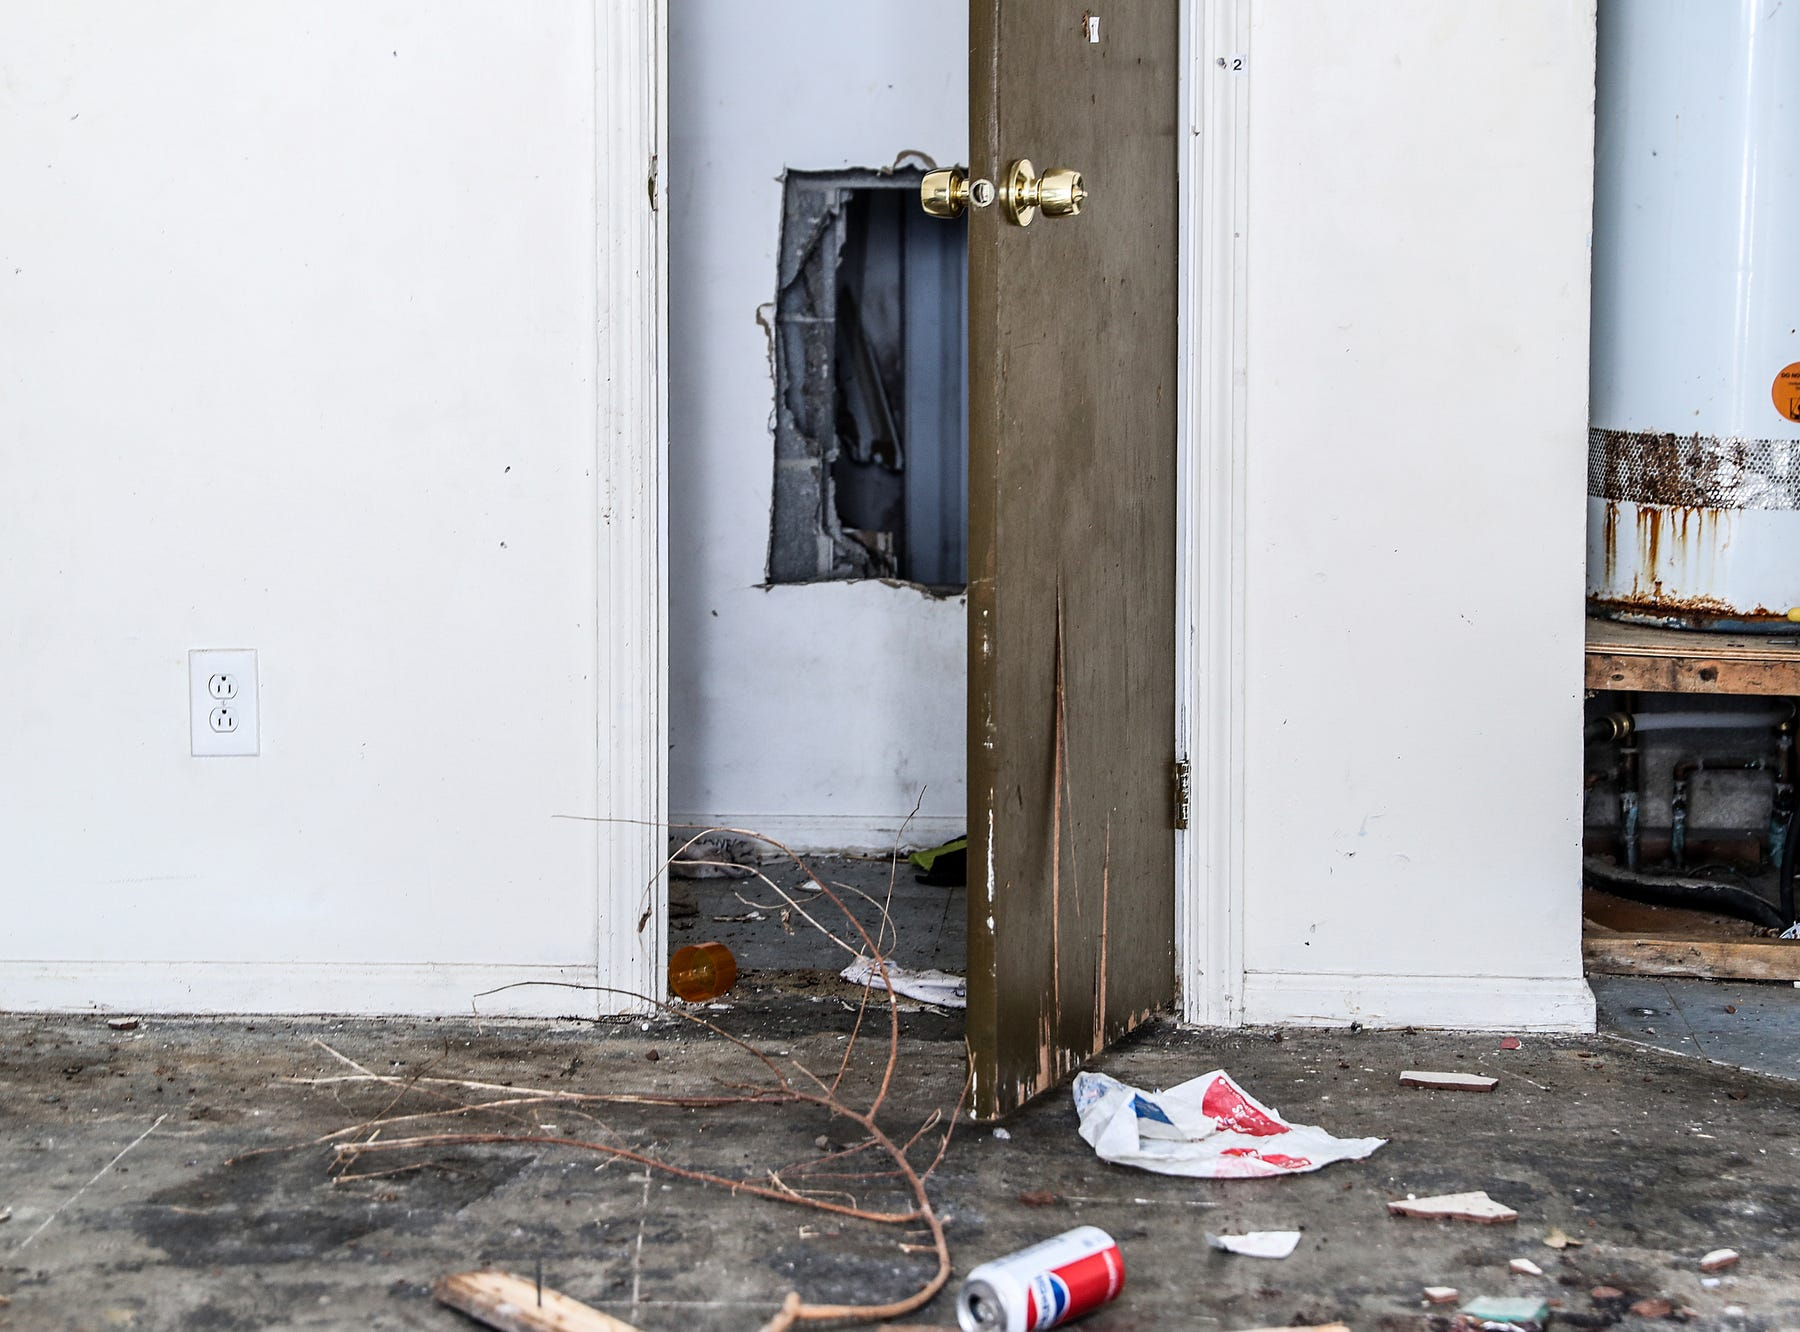 The scene inside an abandoned unit on Essex Court where the body of Anthony Eldridge was found in June 2018, at the Towne and Terrace housing complex off of 42nd Street and Post Road, Saturday, Dec. 8, 2018. At one point, a camera was mounted on the back of the building to keep watch for police entering the complex.